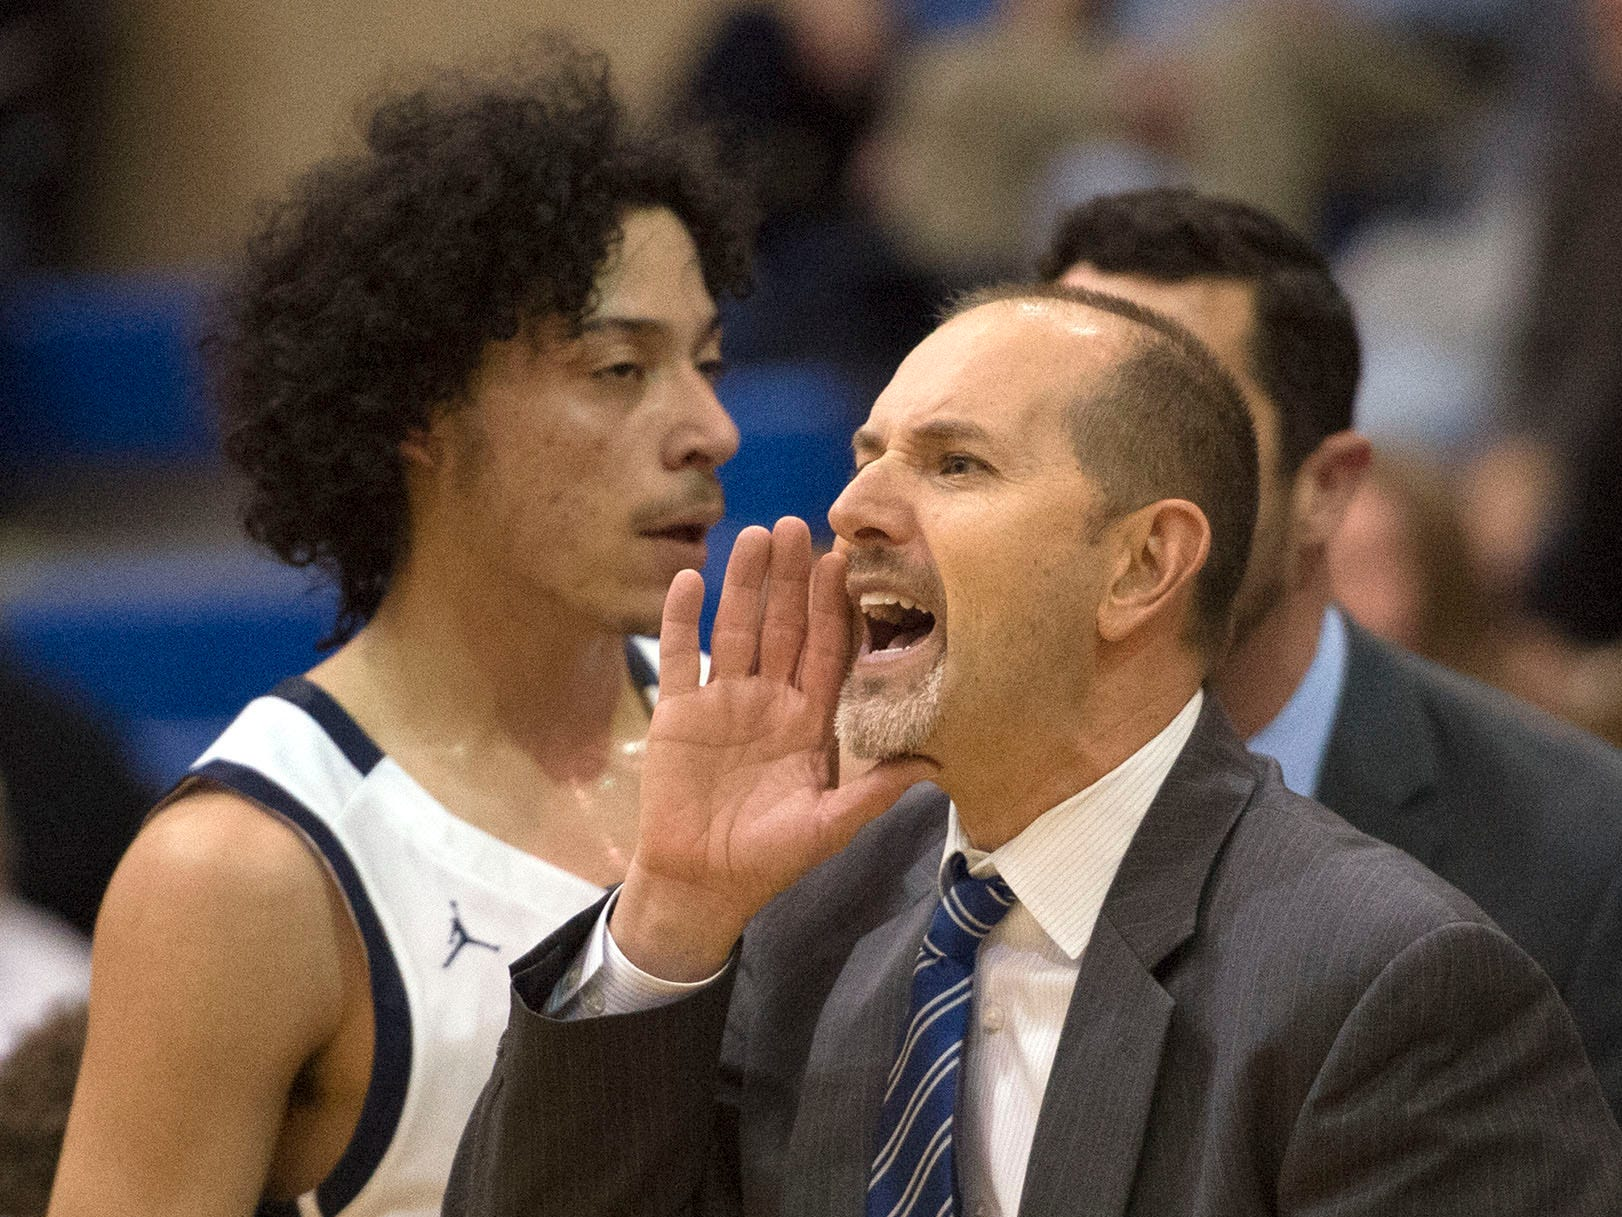 Shawn Shreffler coaches the Chambersburg Trojans. Chambersburg dropped a buzzer-beater 42-40 to State College during  D3 basketball, Friday, Dec. 14, 2018.